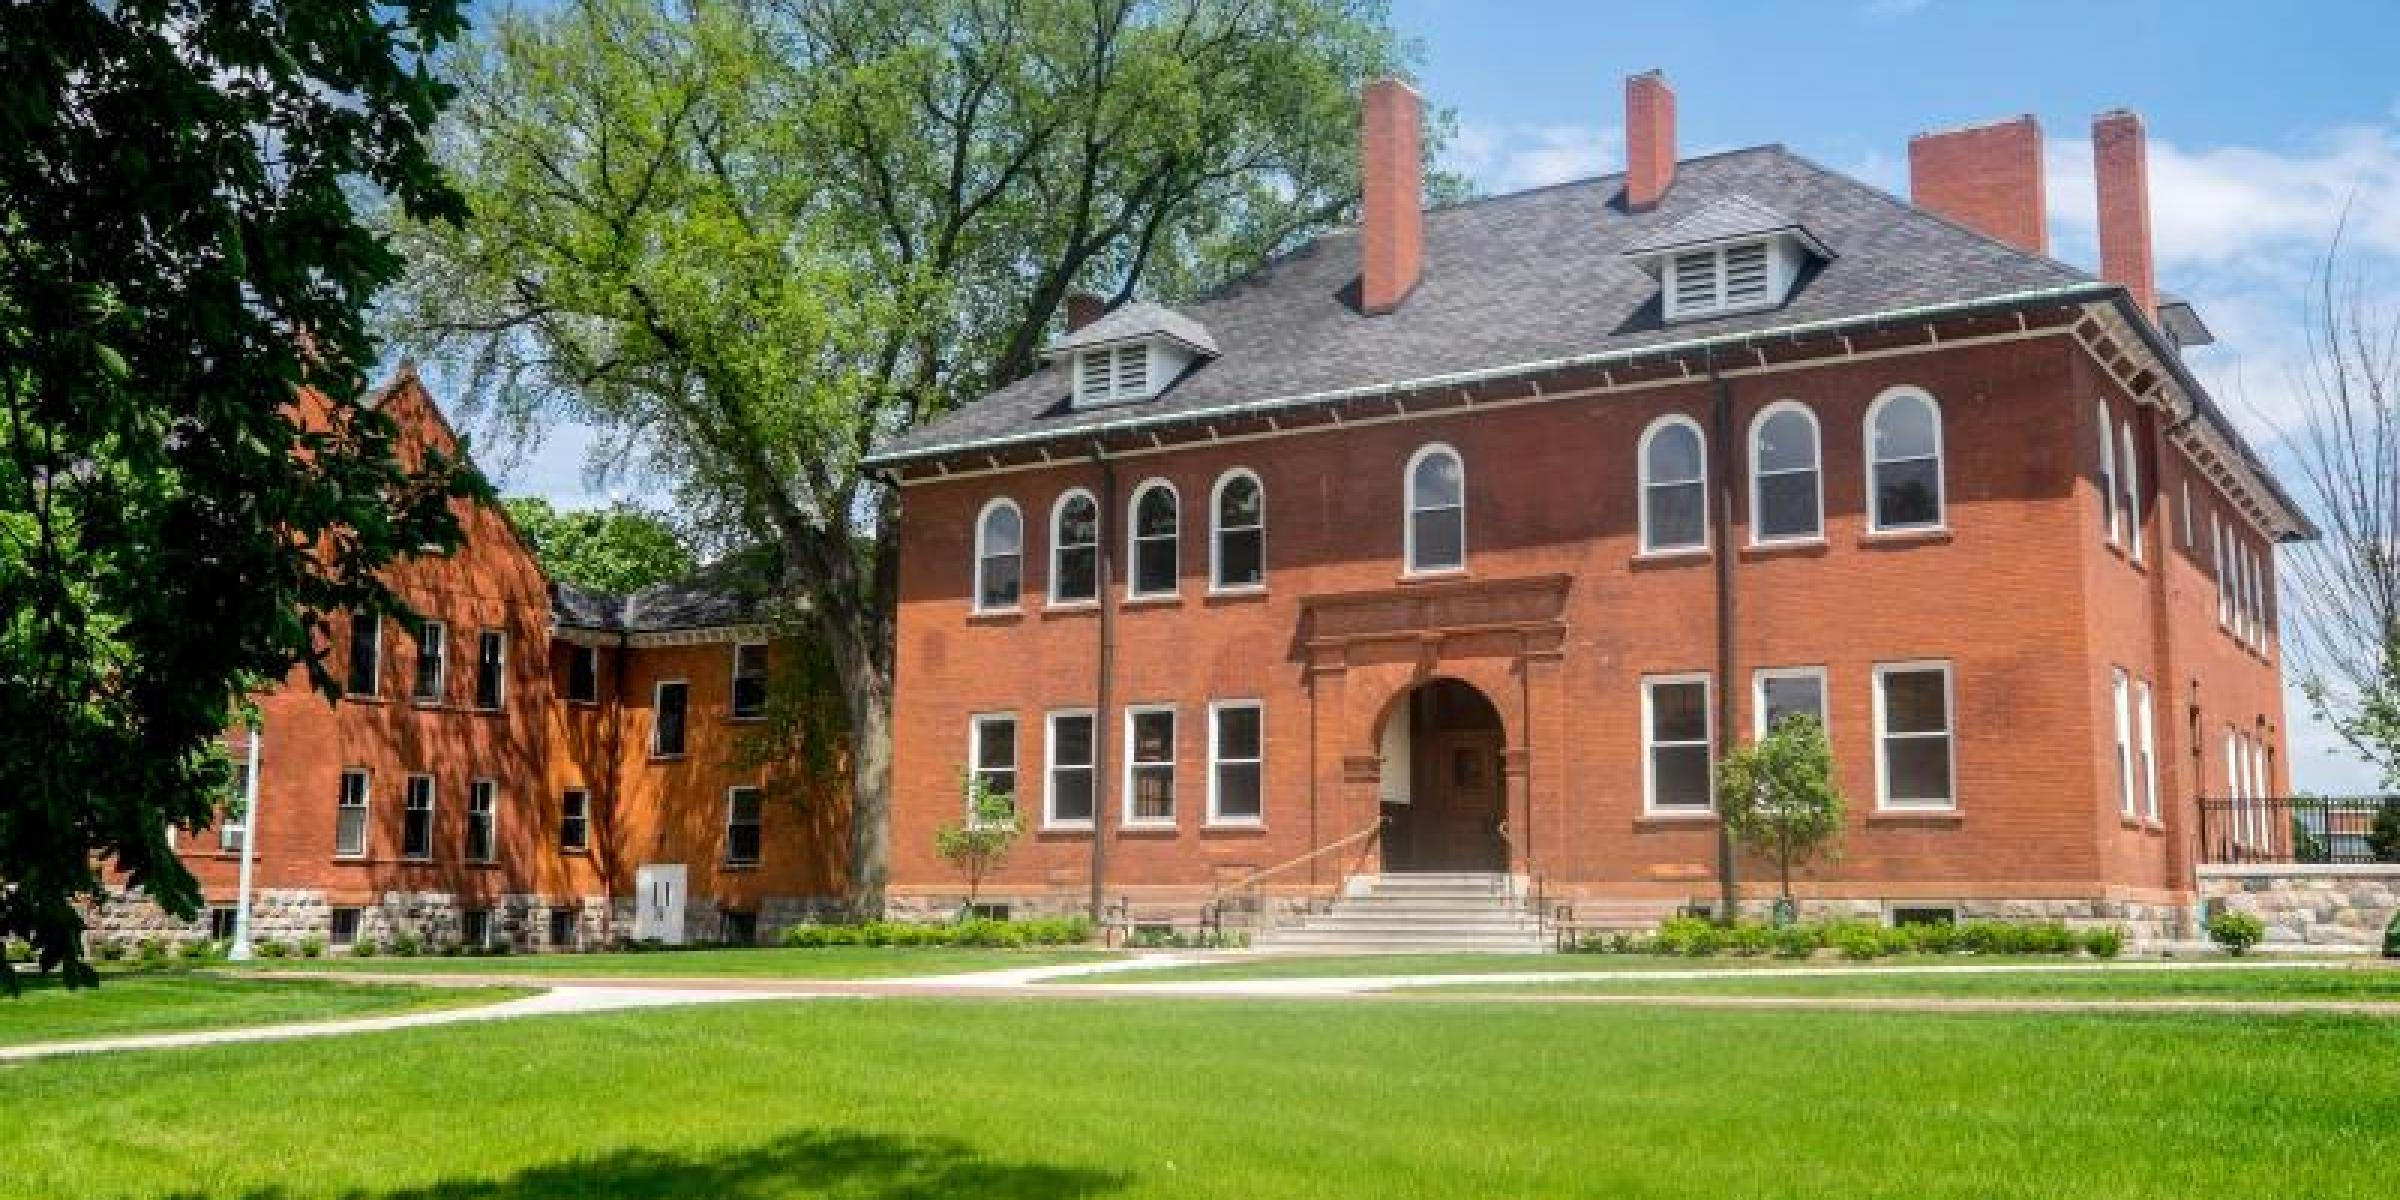 Chittenden Hall